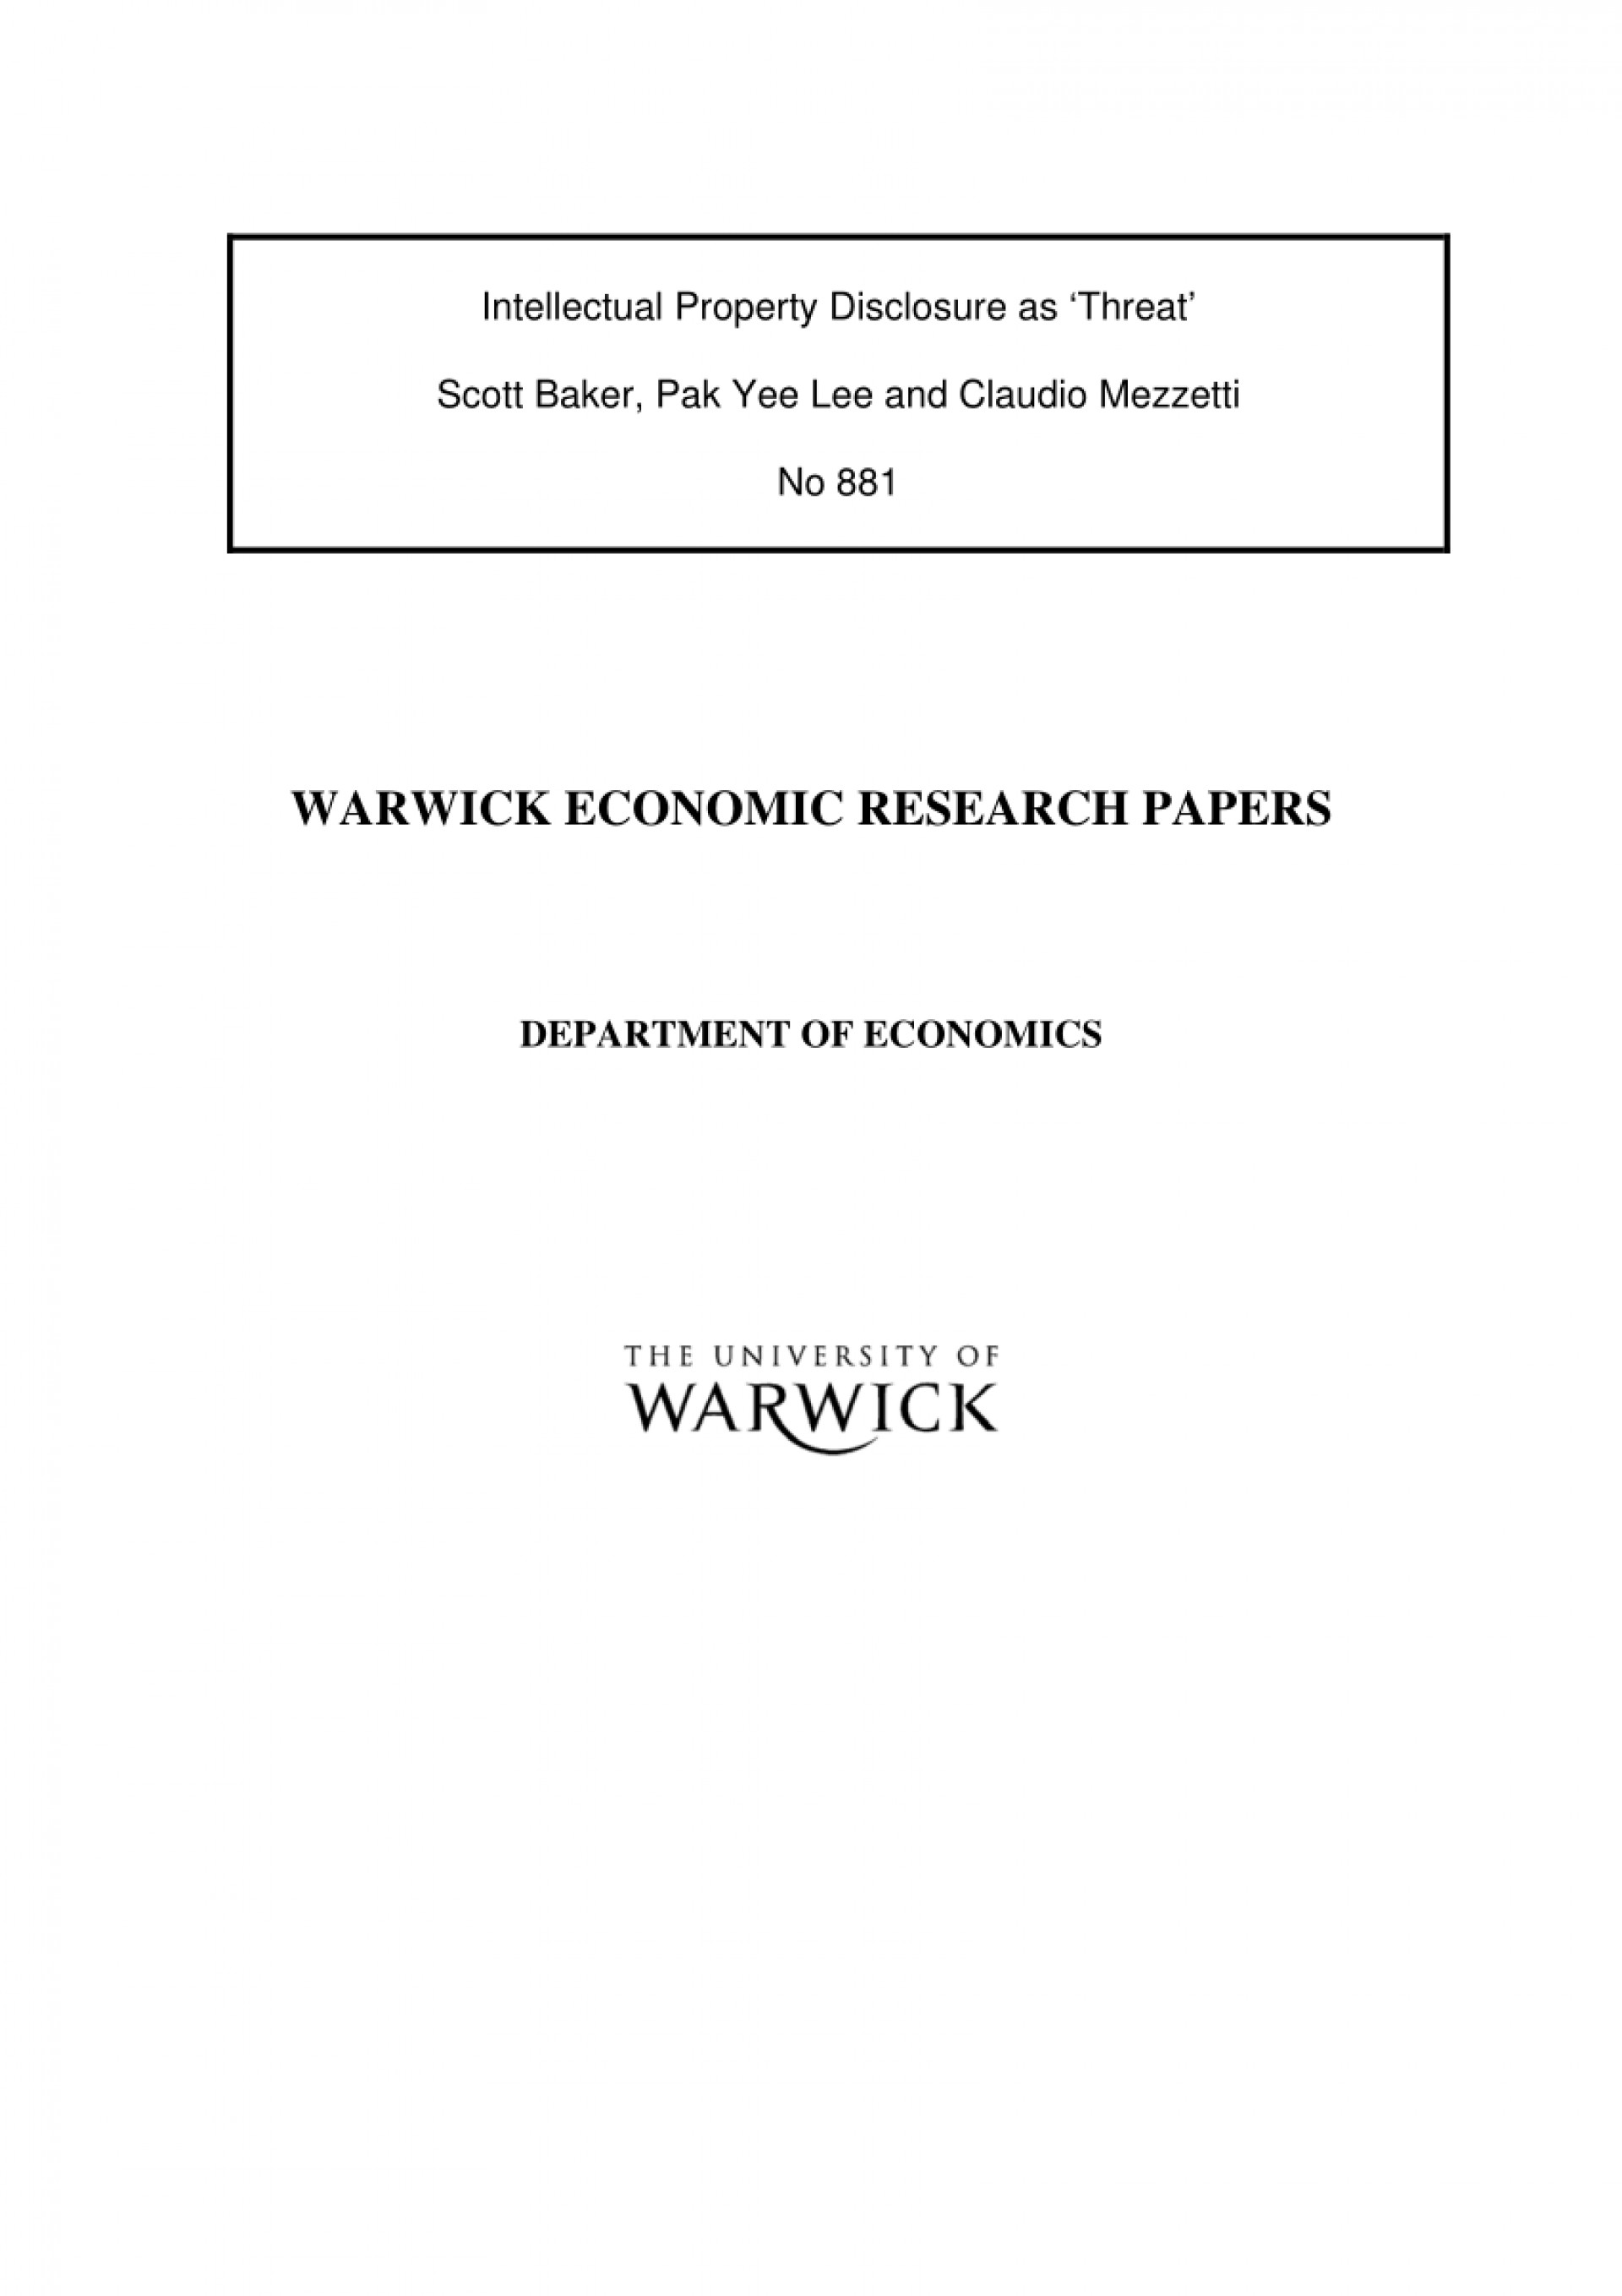 004 Researchs Economics Largepreview Impressive Research Papers On Topics Environmental In India Pdf 1920